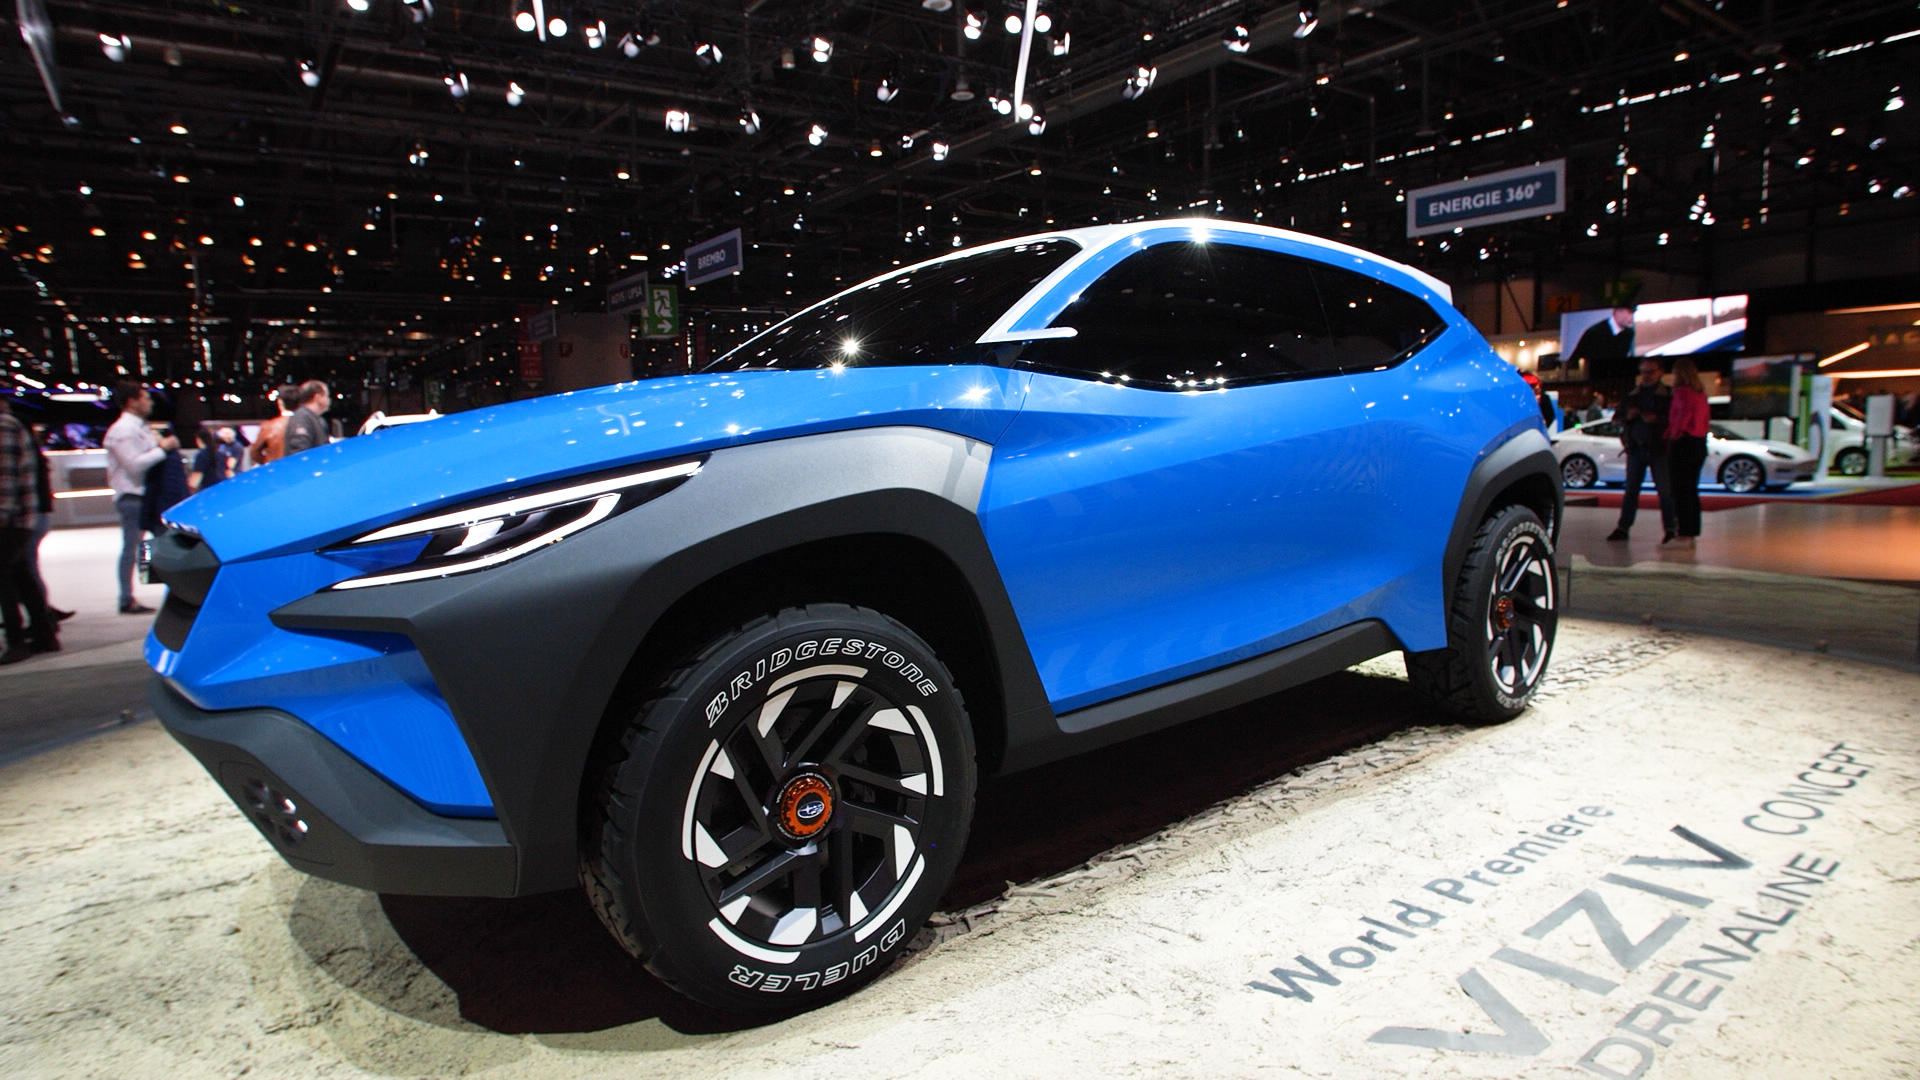 Video: Subaru Viziv Adrenaline concept gives a look at new 'Bolder' design